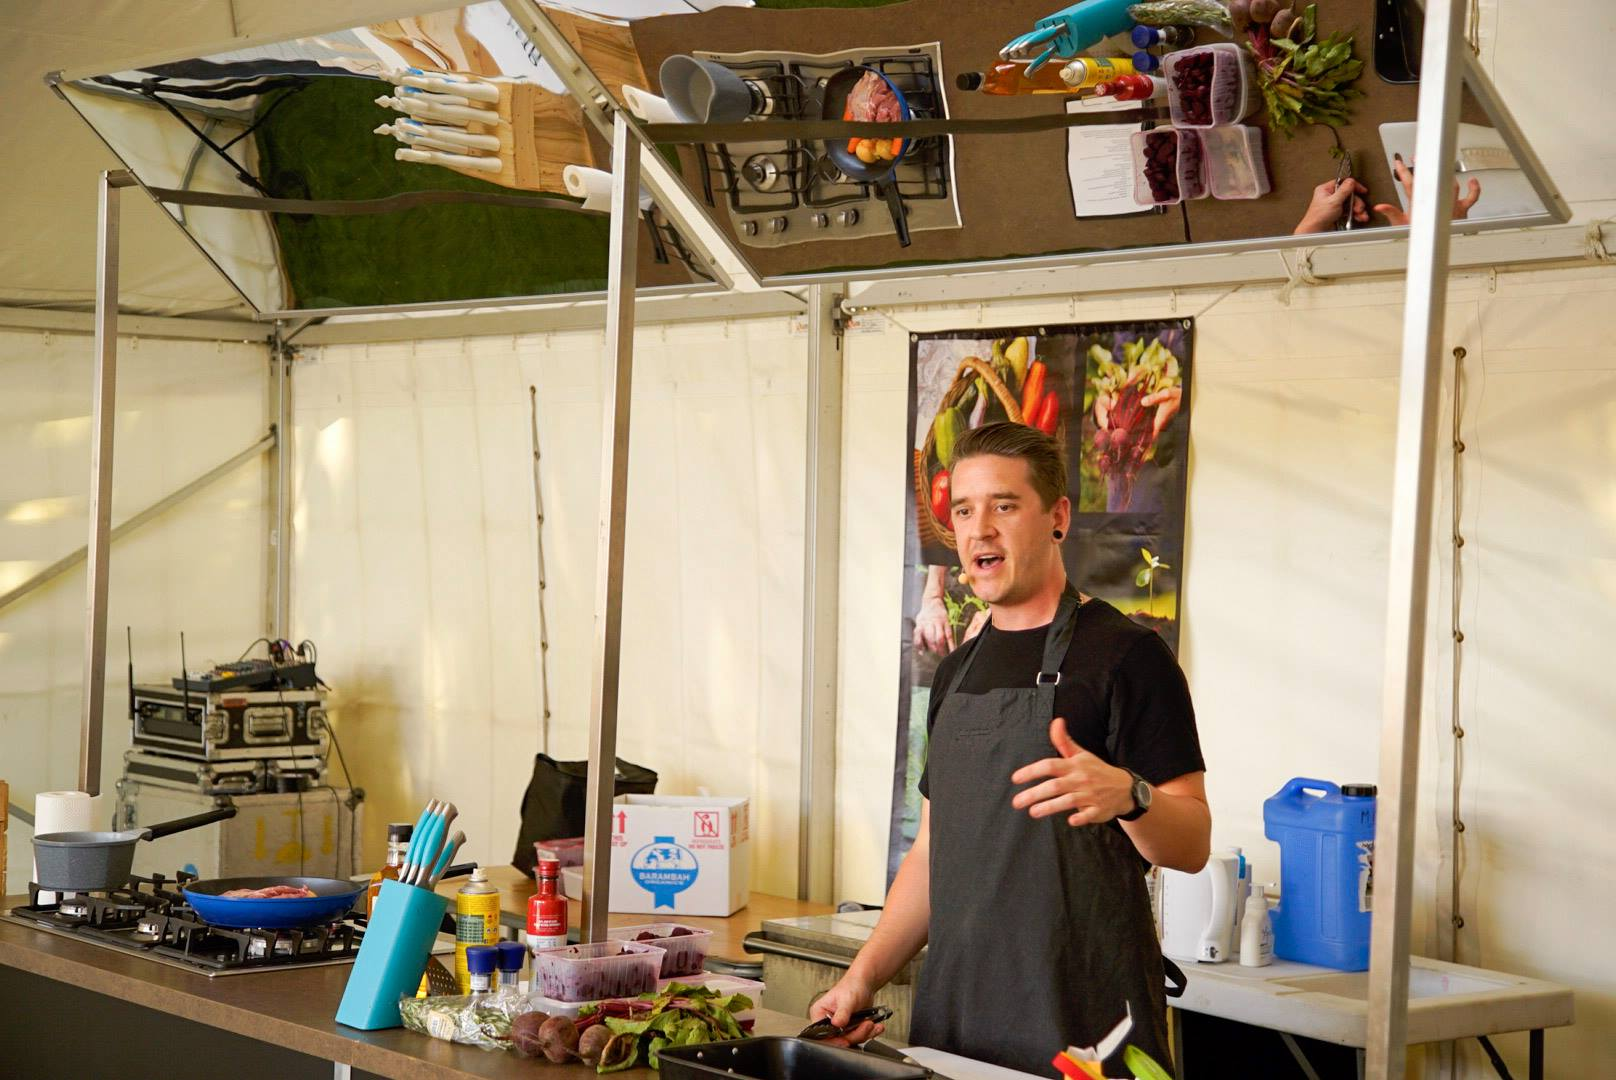 Workshops and Demos - We love speaking about sustainable food!We can come to your festival, event or workplace to teach about local food systems.Our workshops and demos are interactive, fun and exciting and include hands on practical advice on how to purchase, cook and eat more ethical food. We always include something delicious to eat as well...